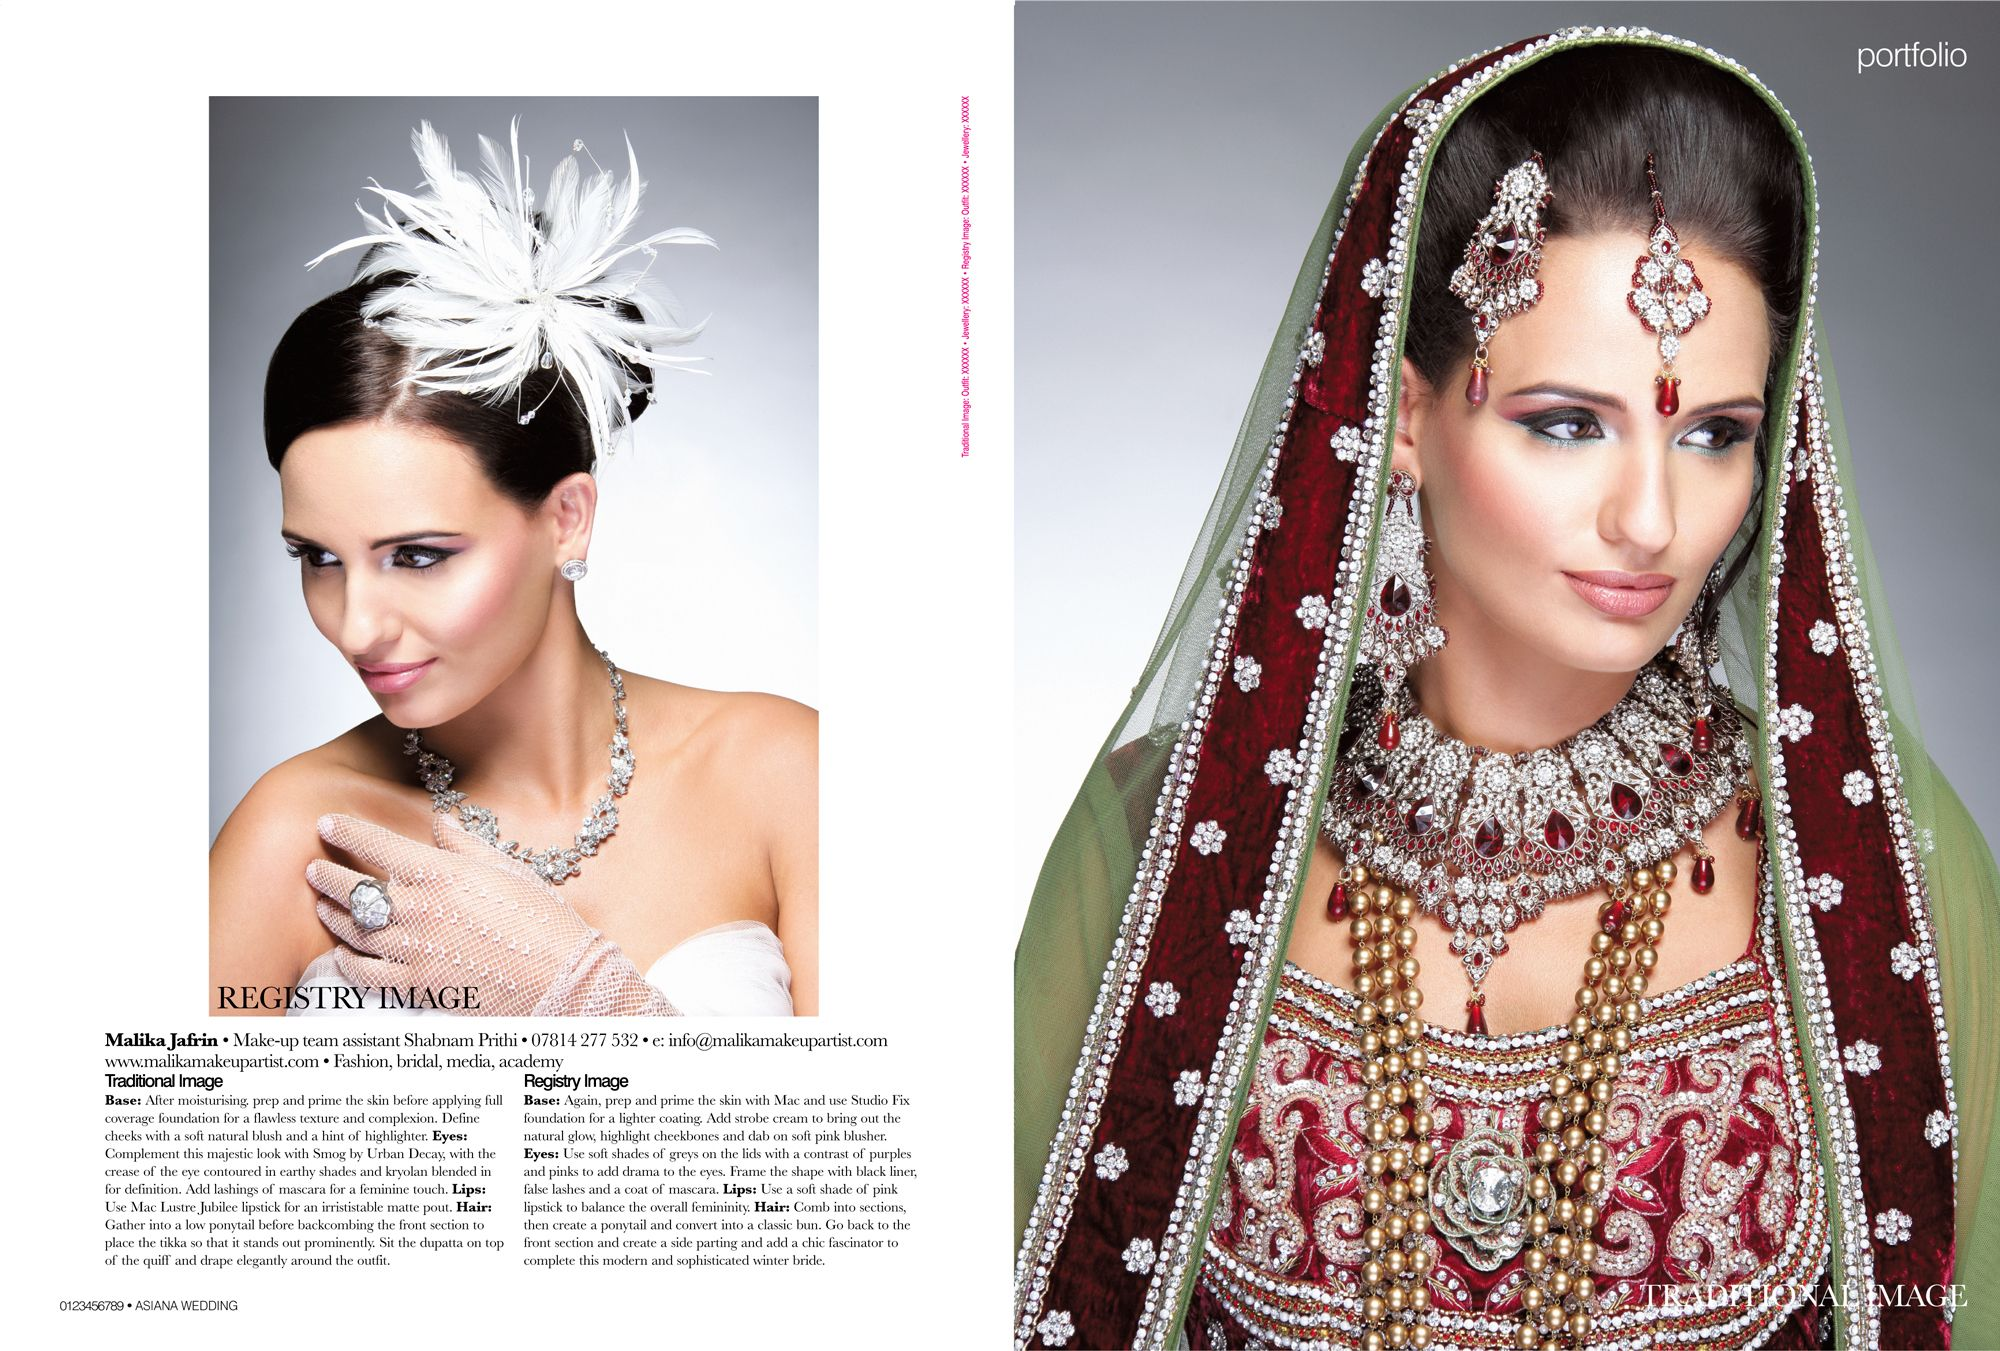 Bridal Portfolio in Asiana Magazine | EDITORIAL PR | Pinterest ...